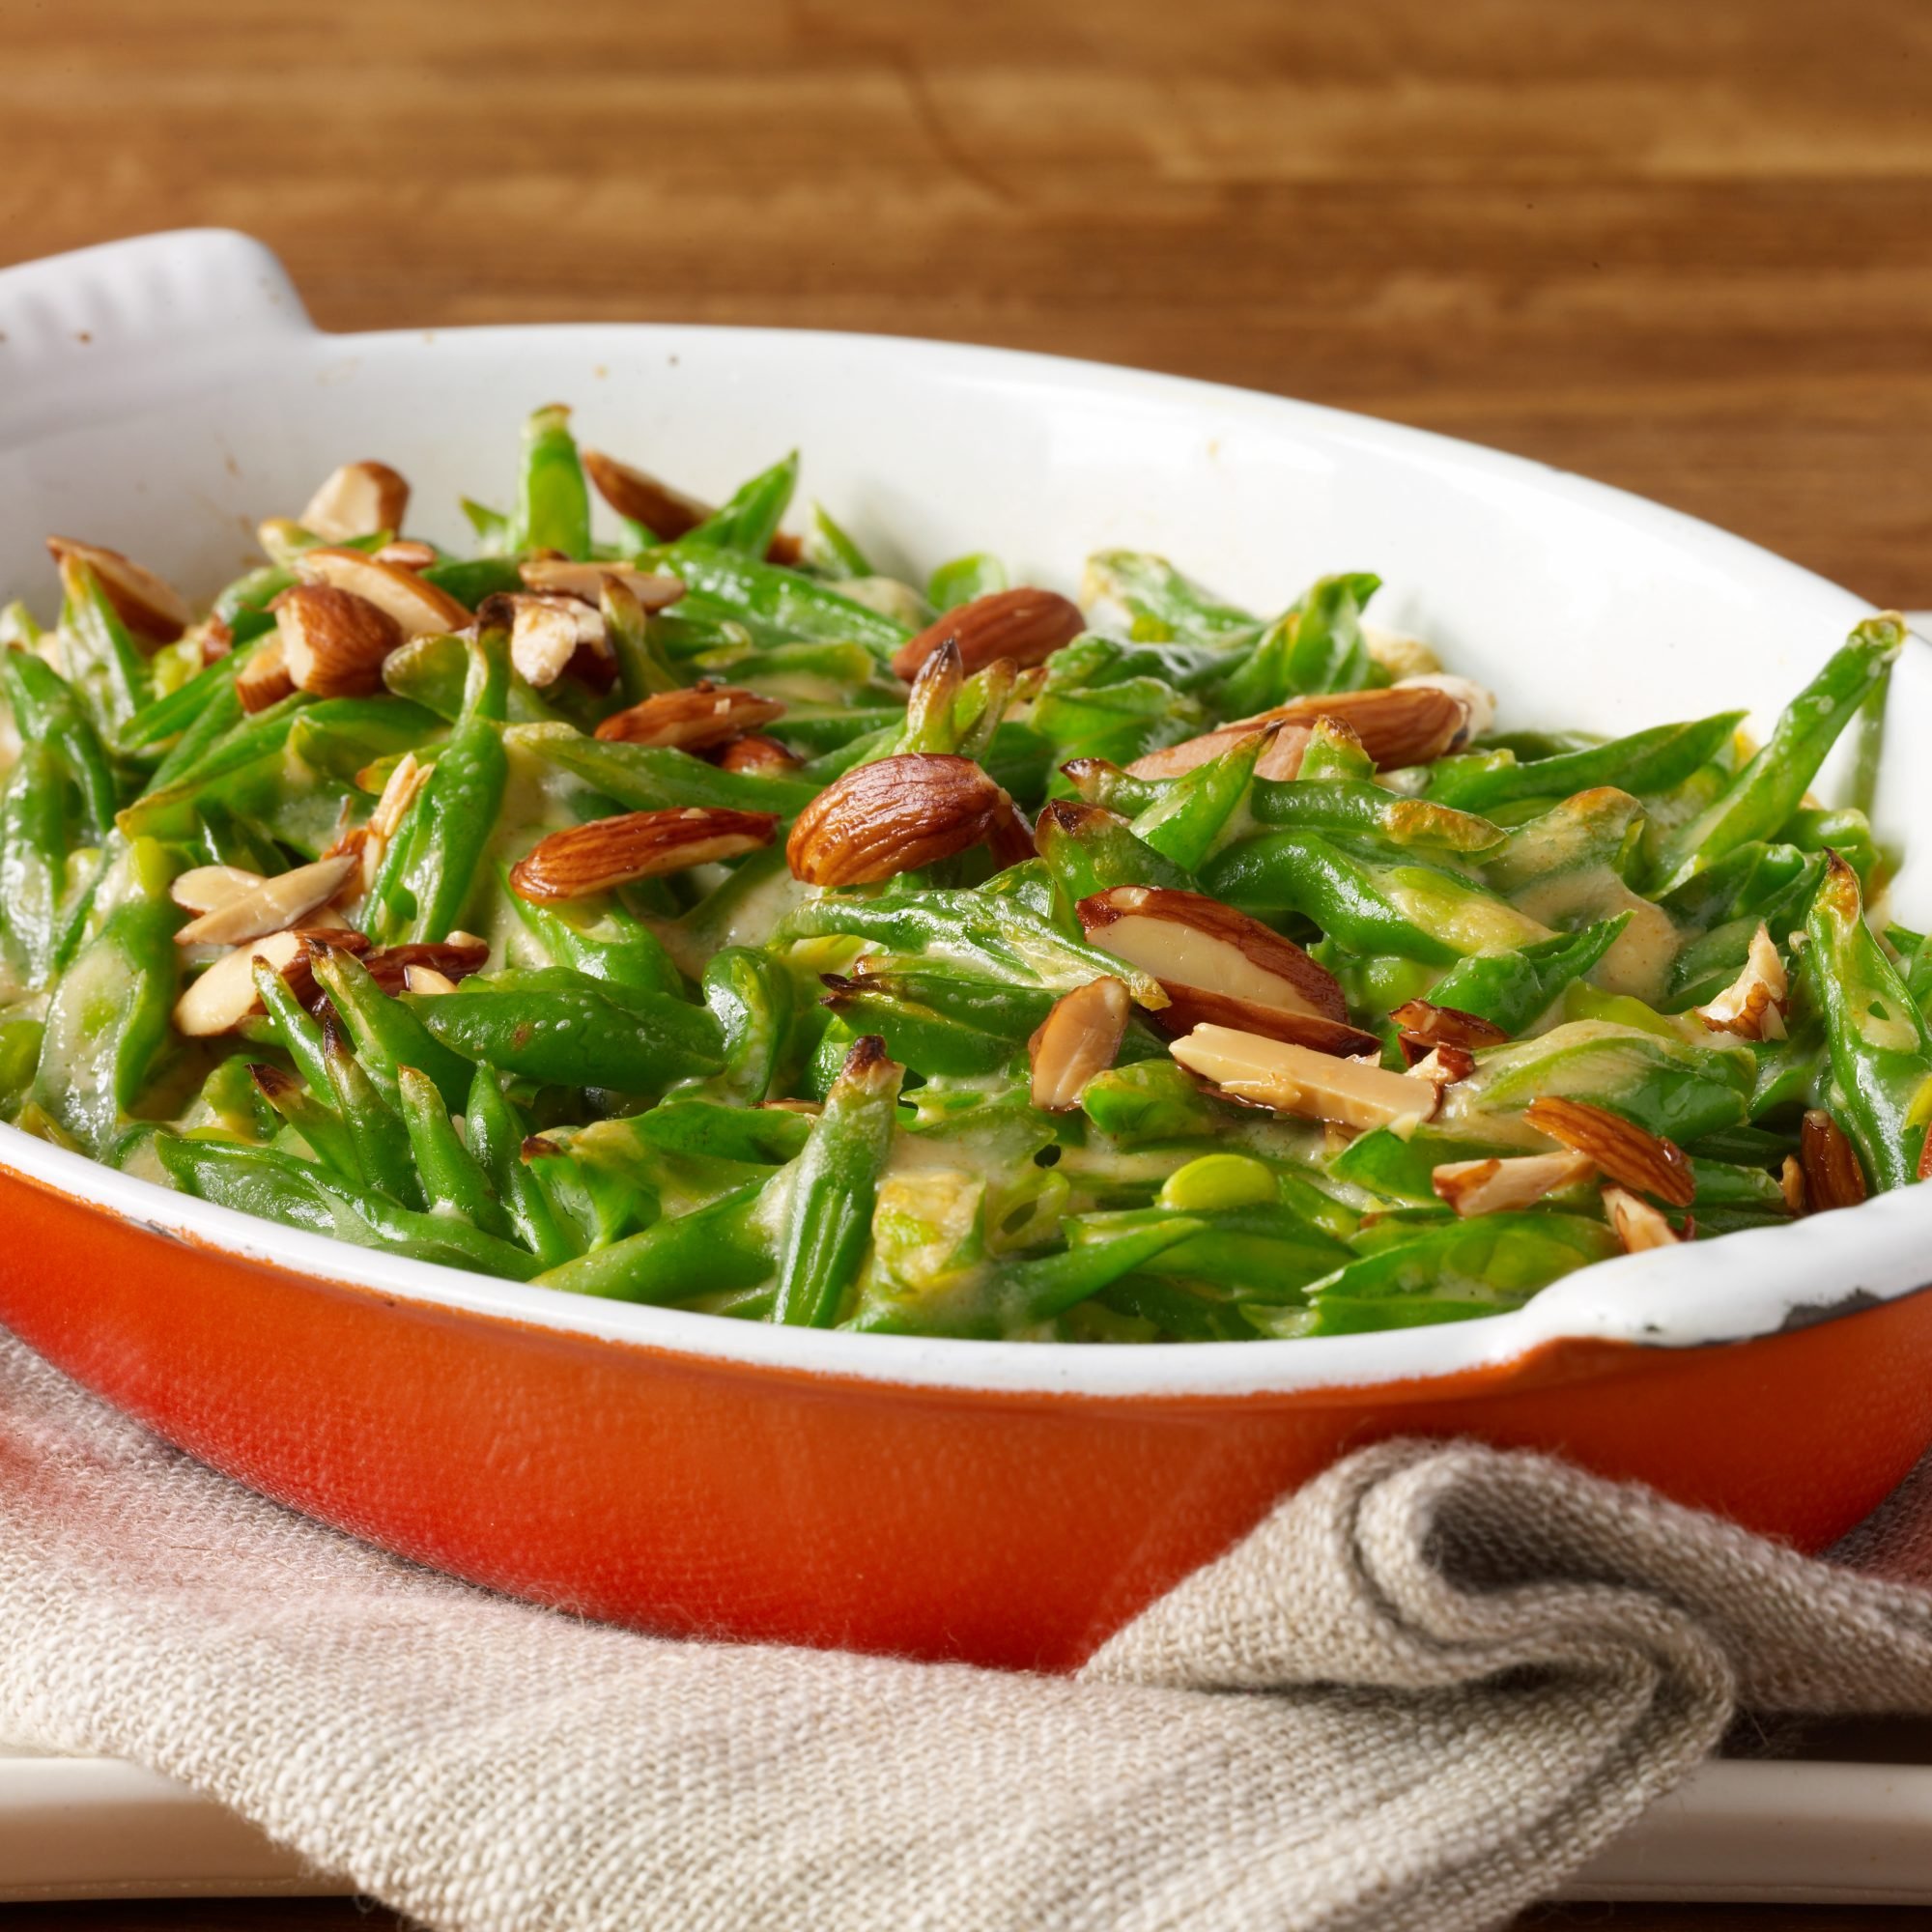 Green Bean Casserole with Goat Cheese, Almonds and Smoked Paprika